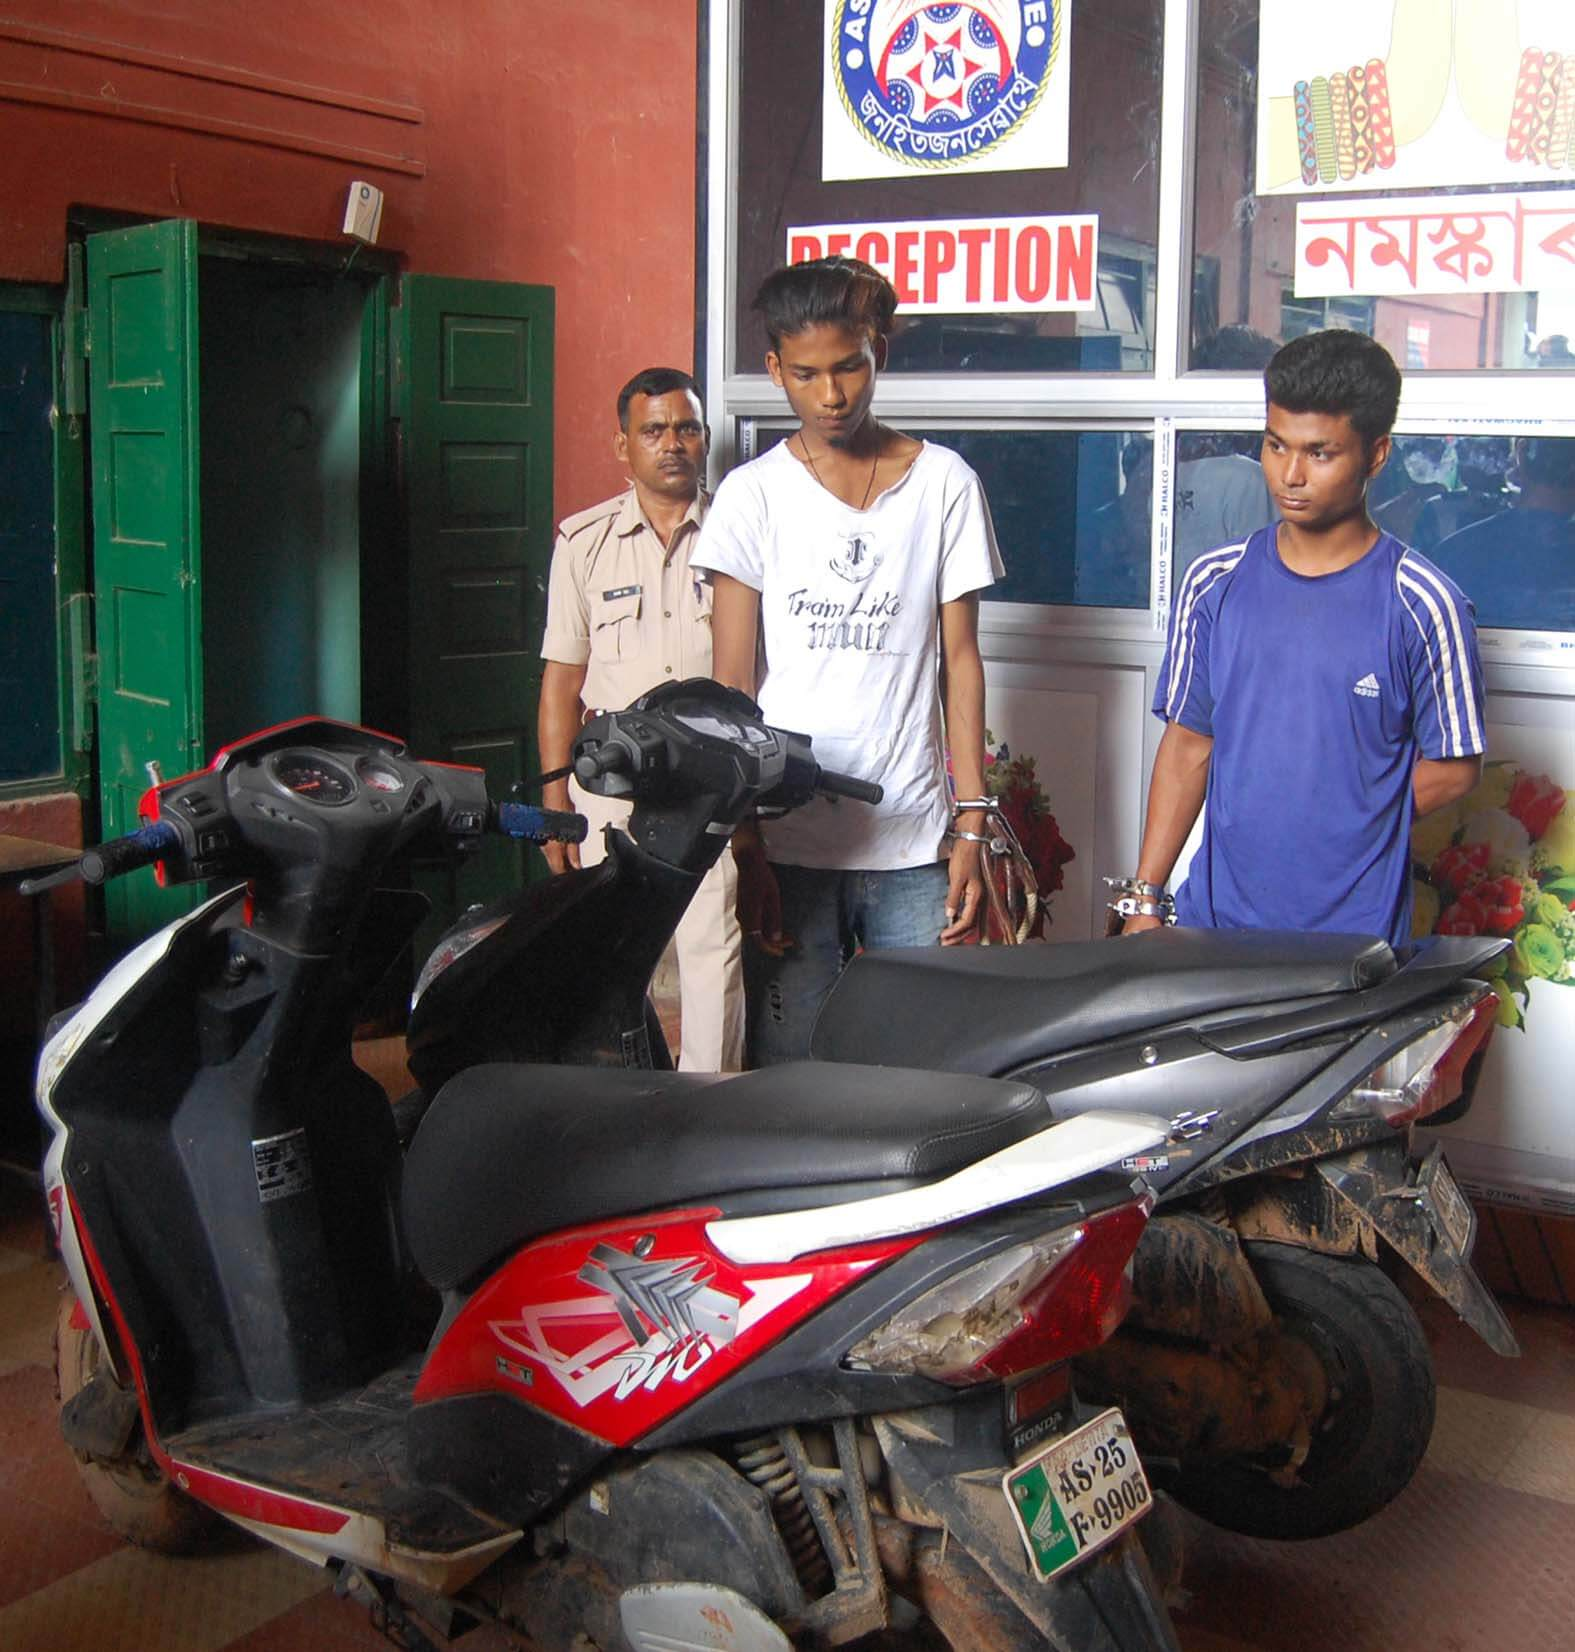 Motorcycle  lifters arrested